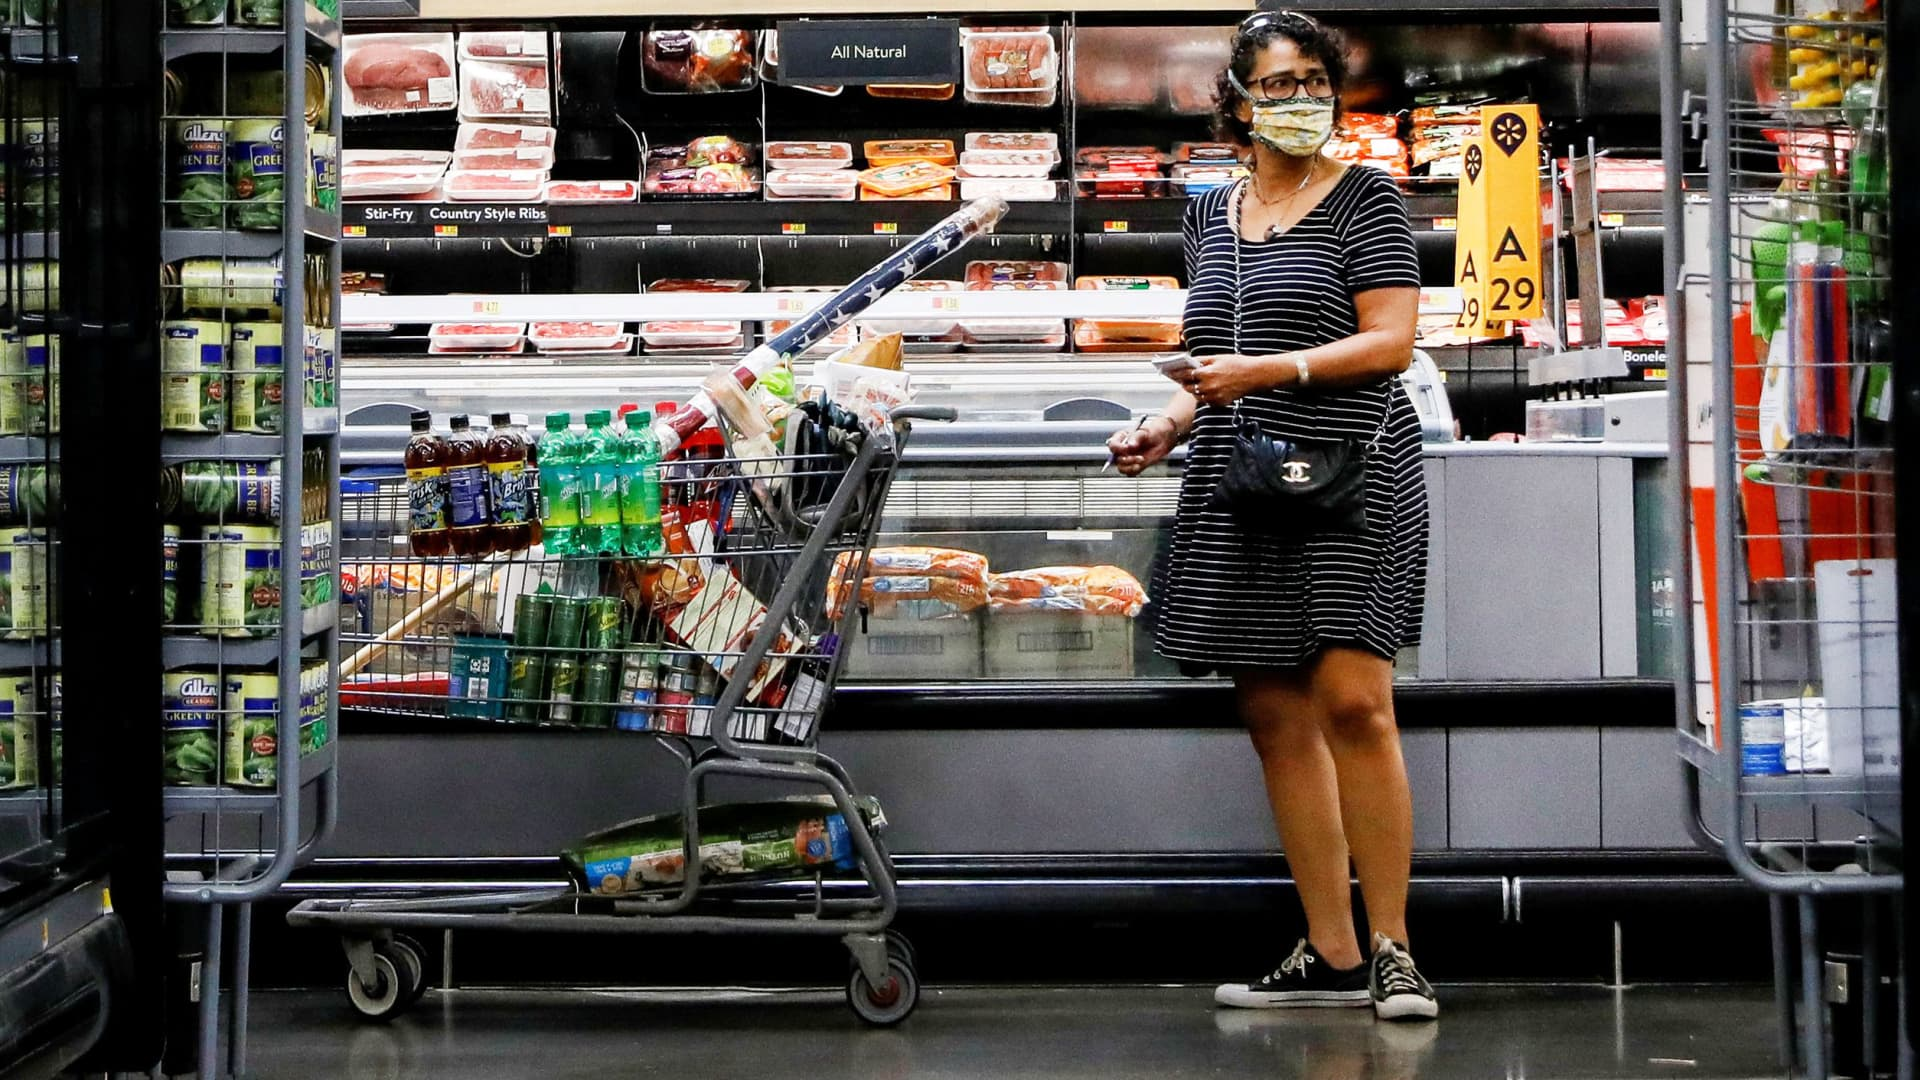 A shopper is seen wearing a mask while shopping at a Walmart store in Bradford, Pennsylvania, July 20, 2020.